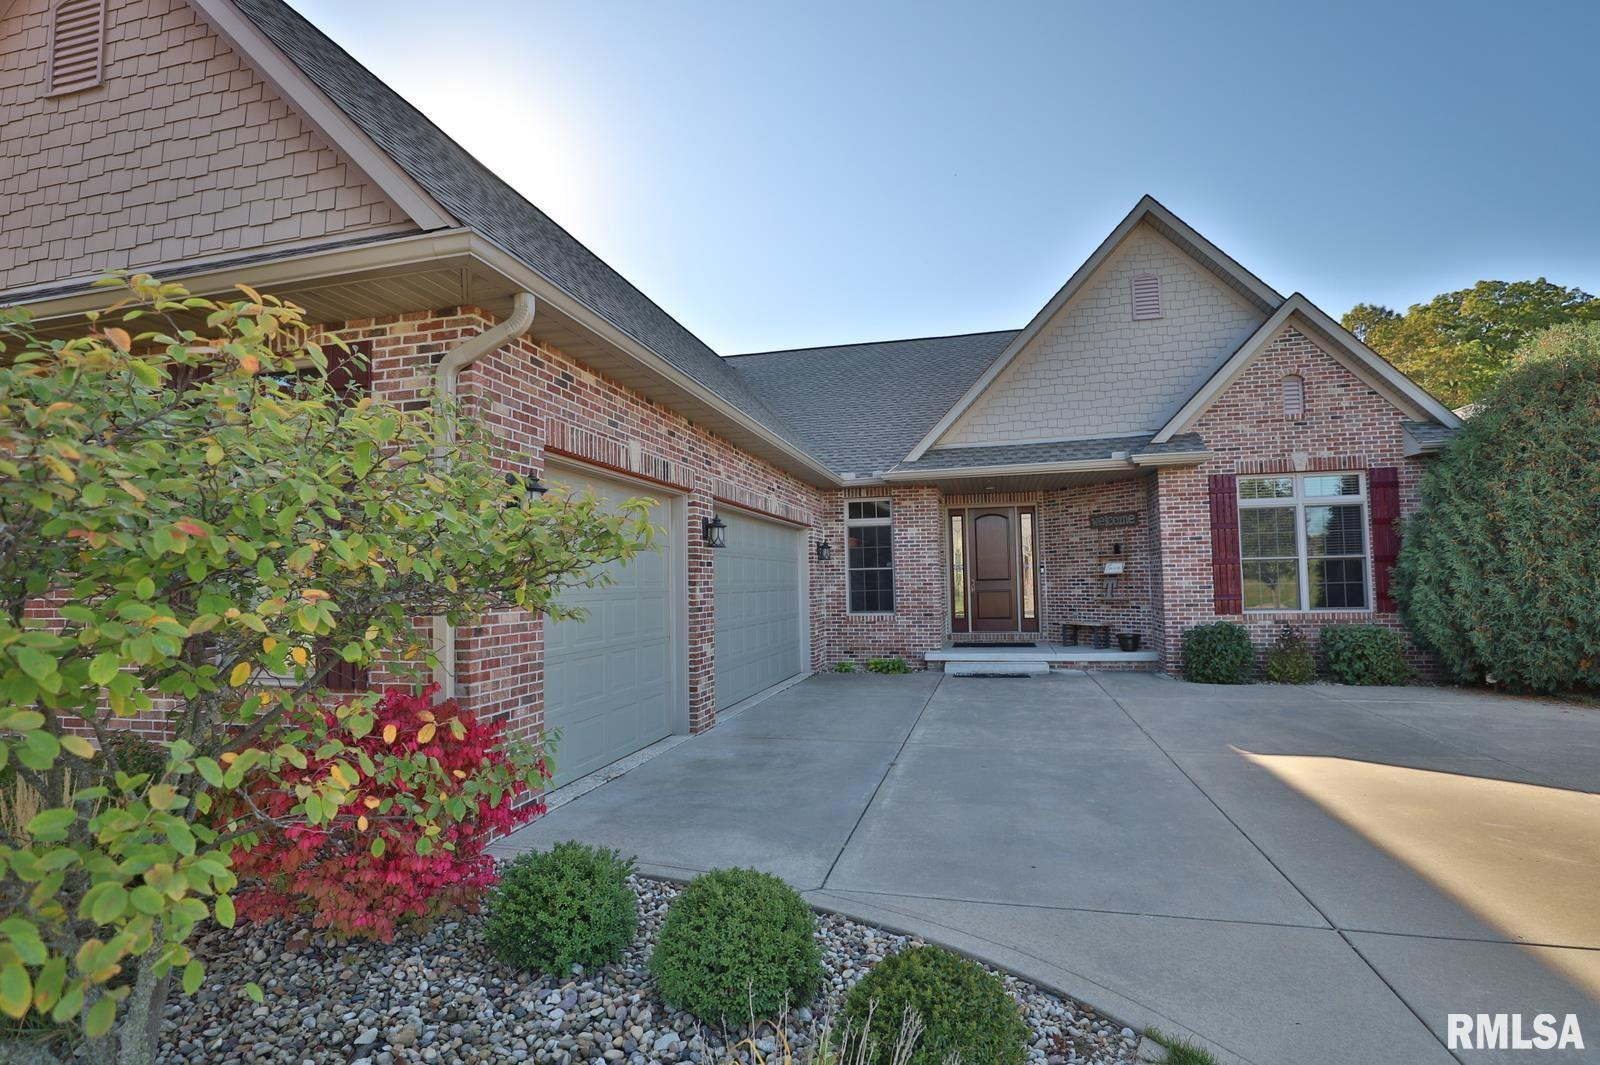 8815 N WESTPOINT Property Photo - Edwards, IL real estate listing